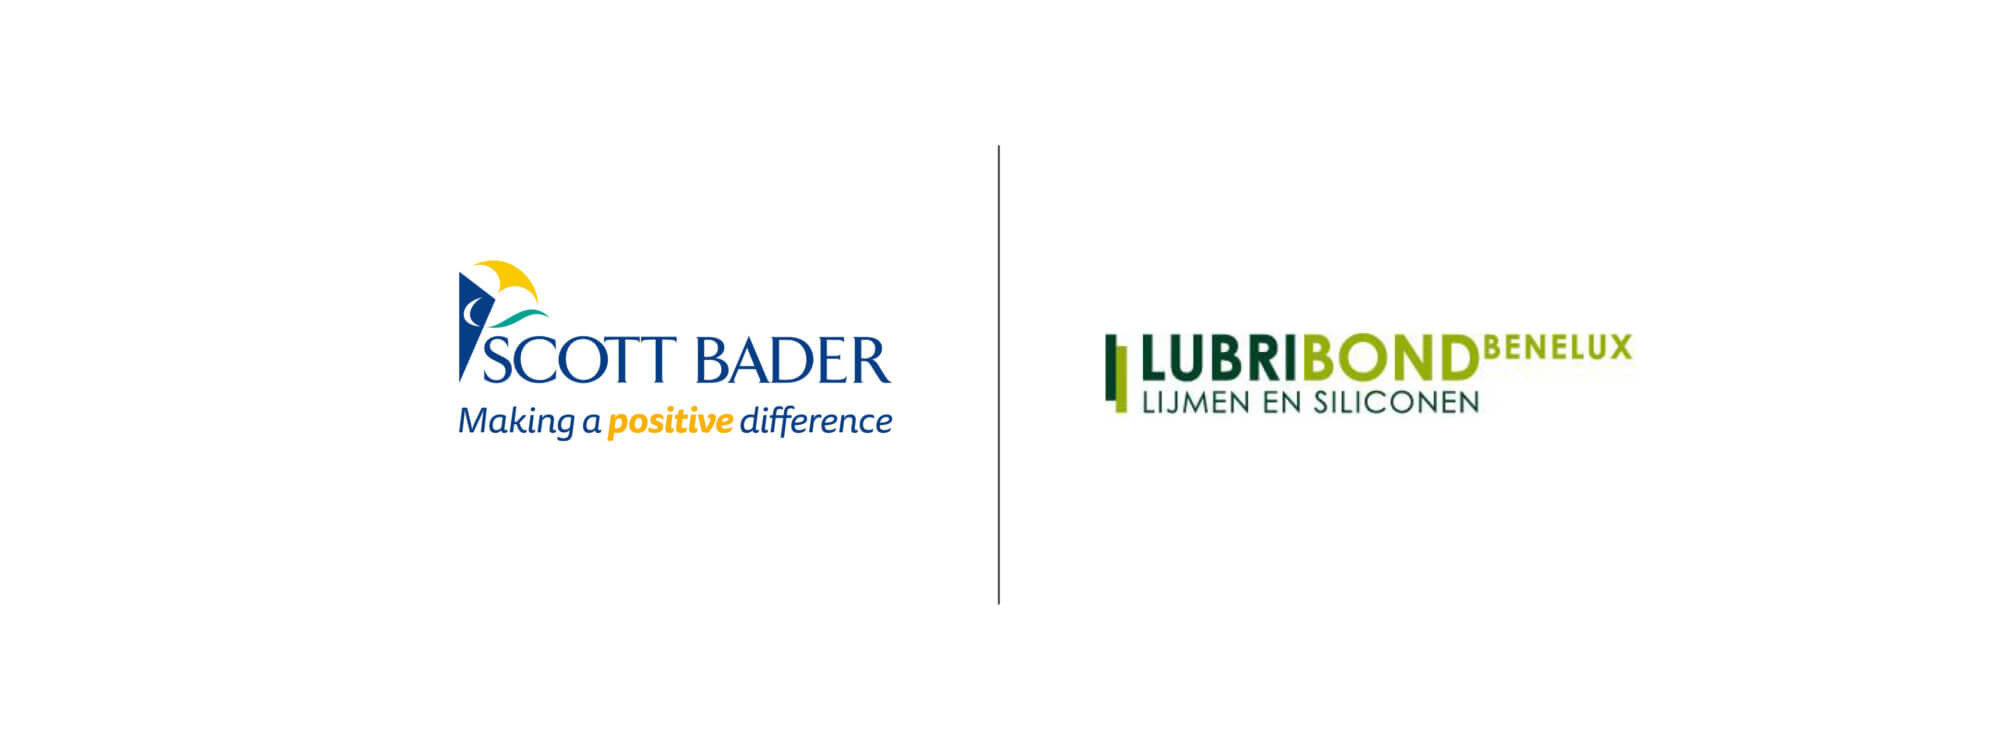 Scott Bader and Lubribond announce partnership for the distribution of Crestabond<sup>®</sup> in The Benelux Union